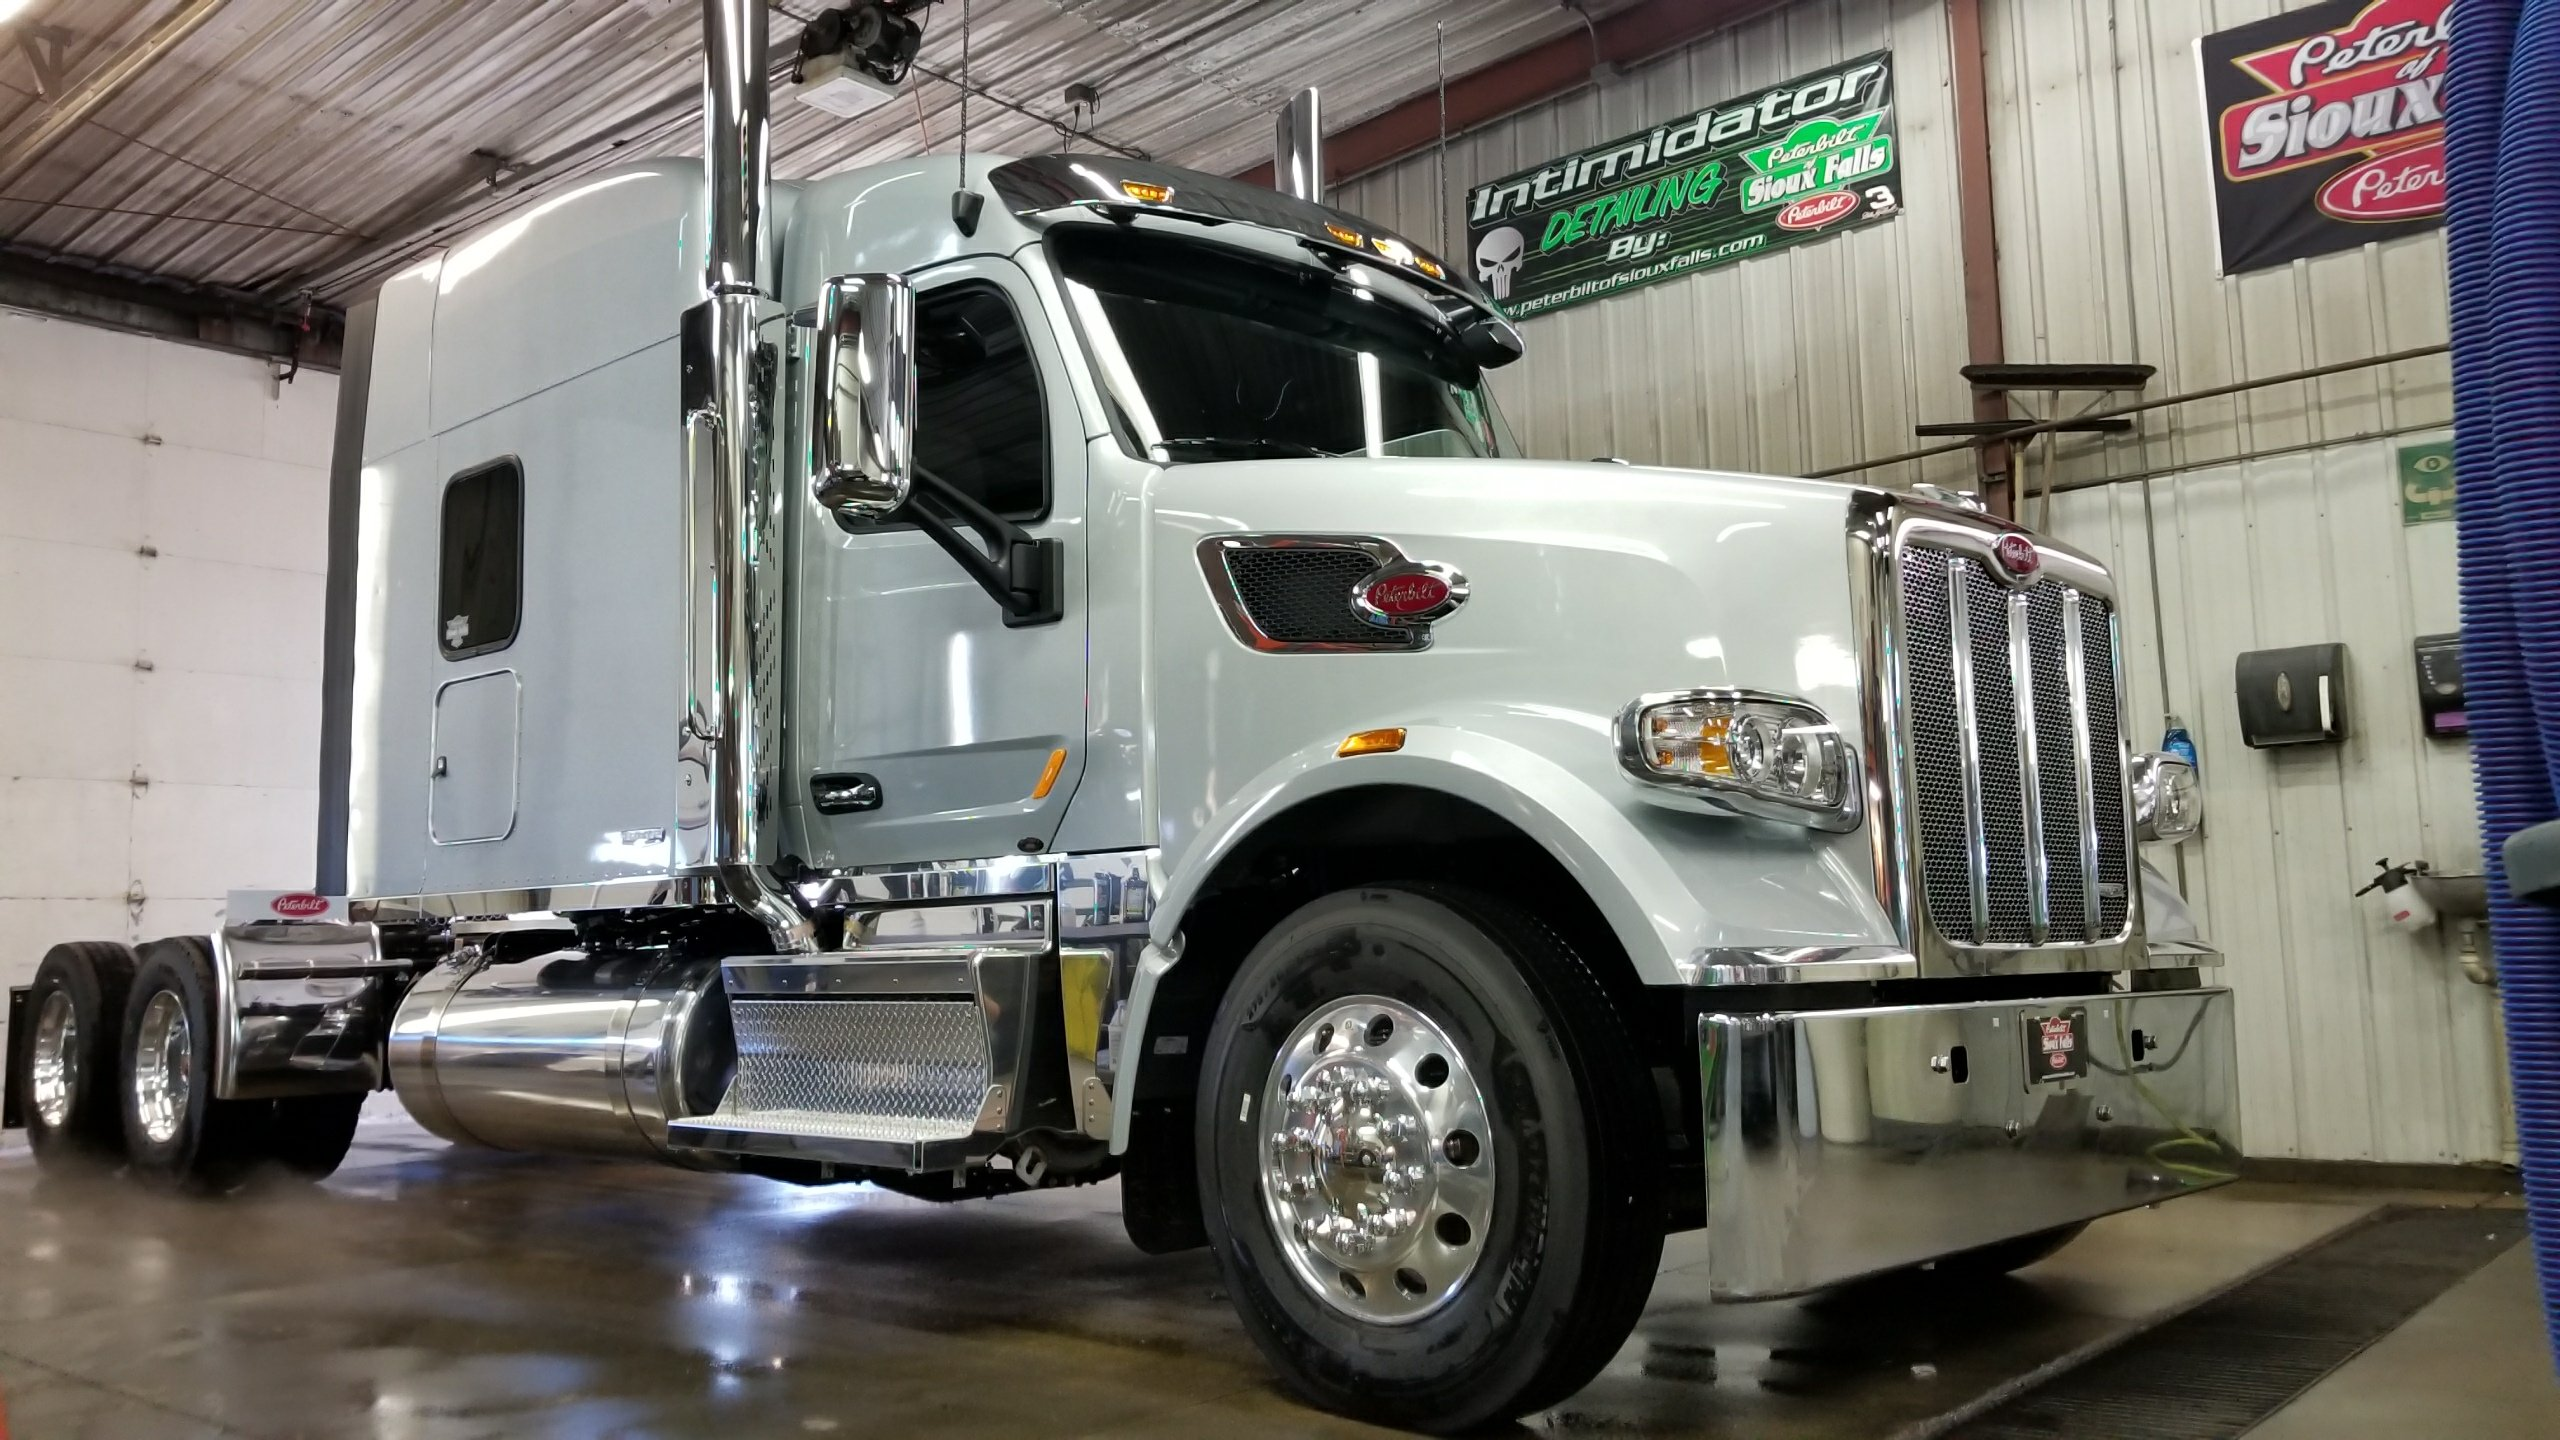 Wallpaper Stores In Sioux Falls Sd 567 Heritage Edition Peterbilt Of Sioux Falls